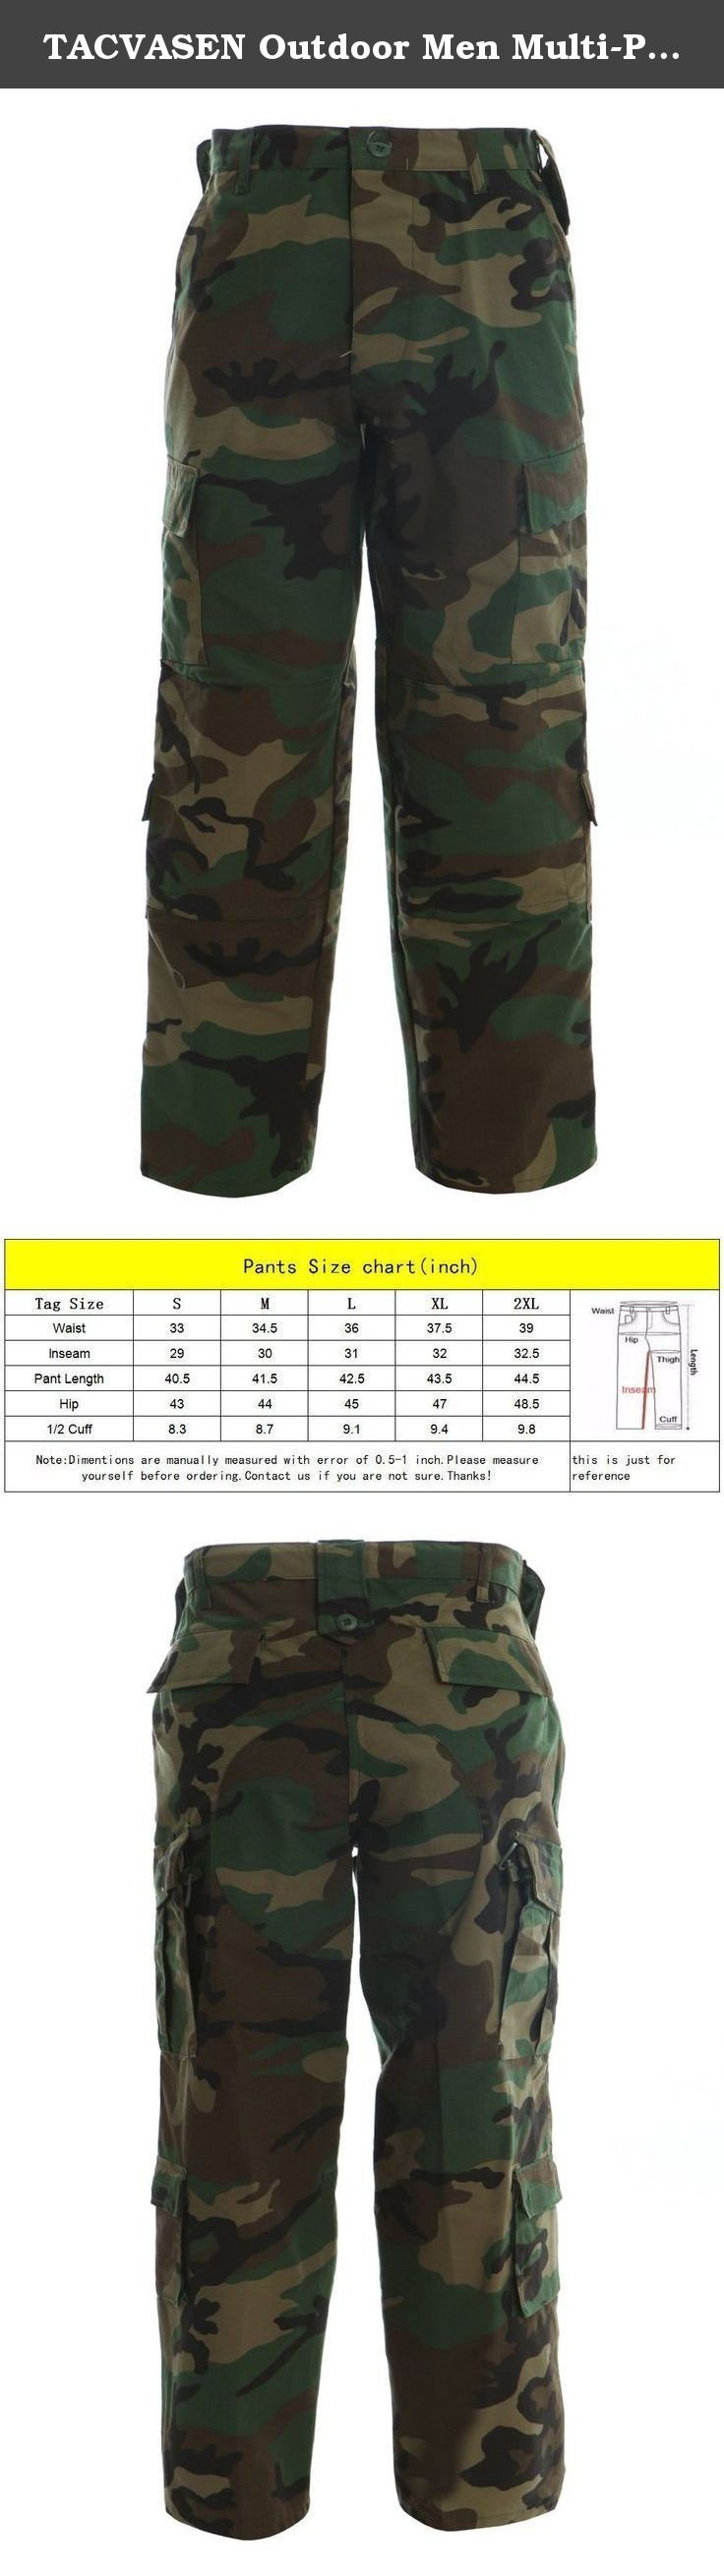 """TACVASEN Outdoor Men Multi-Pocket Breathable Climbing Hiking Hunting Pants Trousers 2XL Jungle. SIZE CHART: (Inches) Tag size:S-----Waist/33.0""""---Pant length/40.5""""---Inseam/29.0"""" Tag size:M-----Waist/34.5""""---Pant length/41.5""""---Inseam/30.0"""" Tag size:L-----Waist/36.0""""---Pant length/42.5""""---Inseam/31.0"""" Tag size:XL----Waist/37.5""""---Pant length/43.5""""---Inseam/32.0"""" Tag size:XXL---Waist/39.0""""---Pant length/44.5""""---Inseam/32.5"""" Note:This is not Amazon's standard size,please refer to size Chart..."""